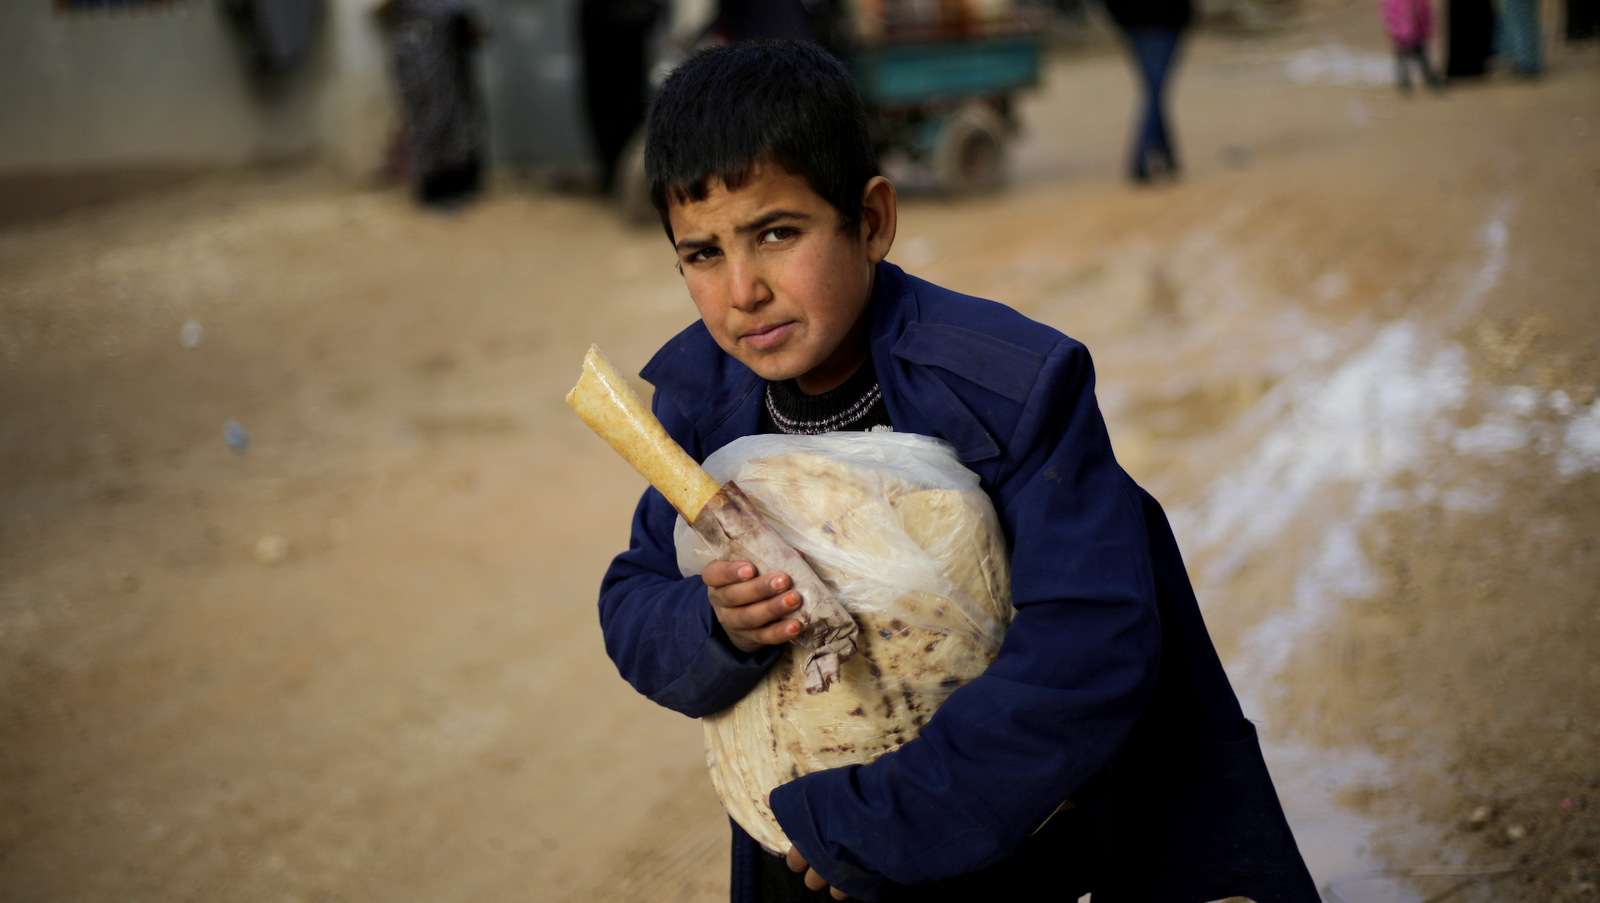 A Syrian boy displaced with his family from eastern Aleppo holds a sandwich and bread bag in the village of Jibreen south of Aleppo, Syria, Saturday, Dec. 3, 2016. (AP Photo/Hassan Ammar)